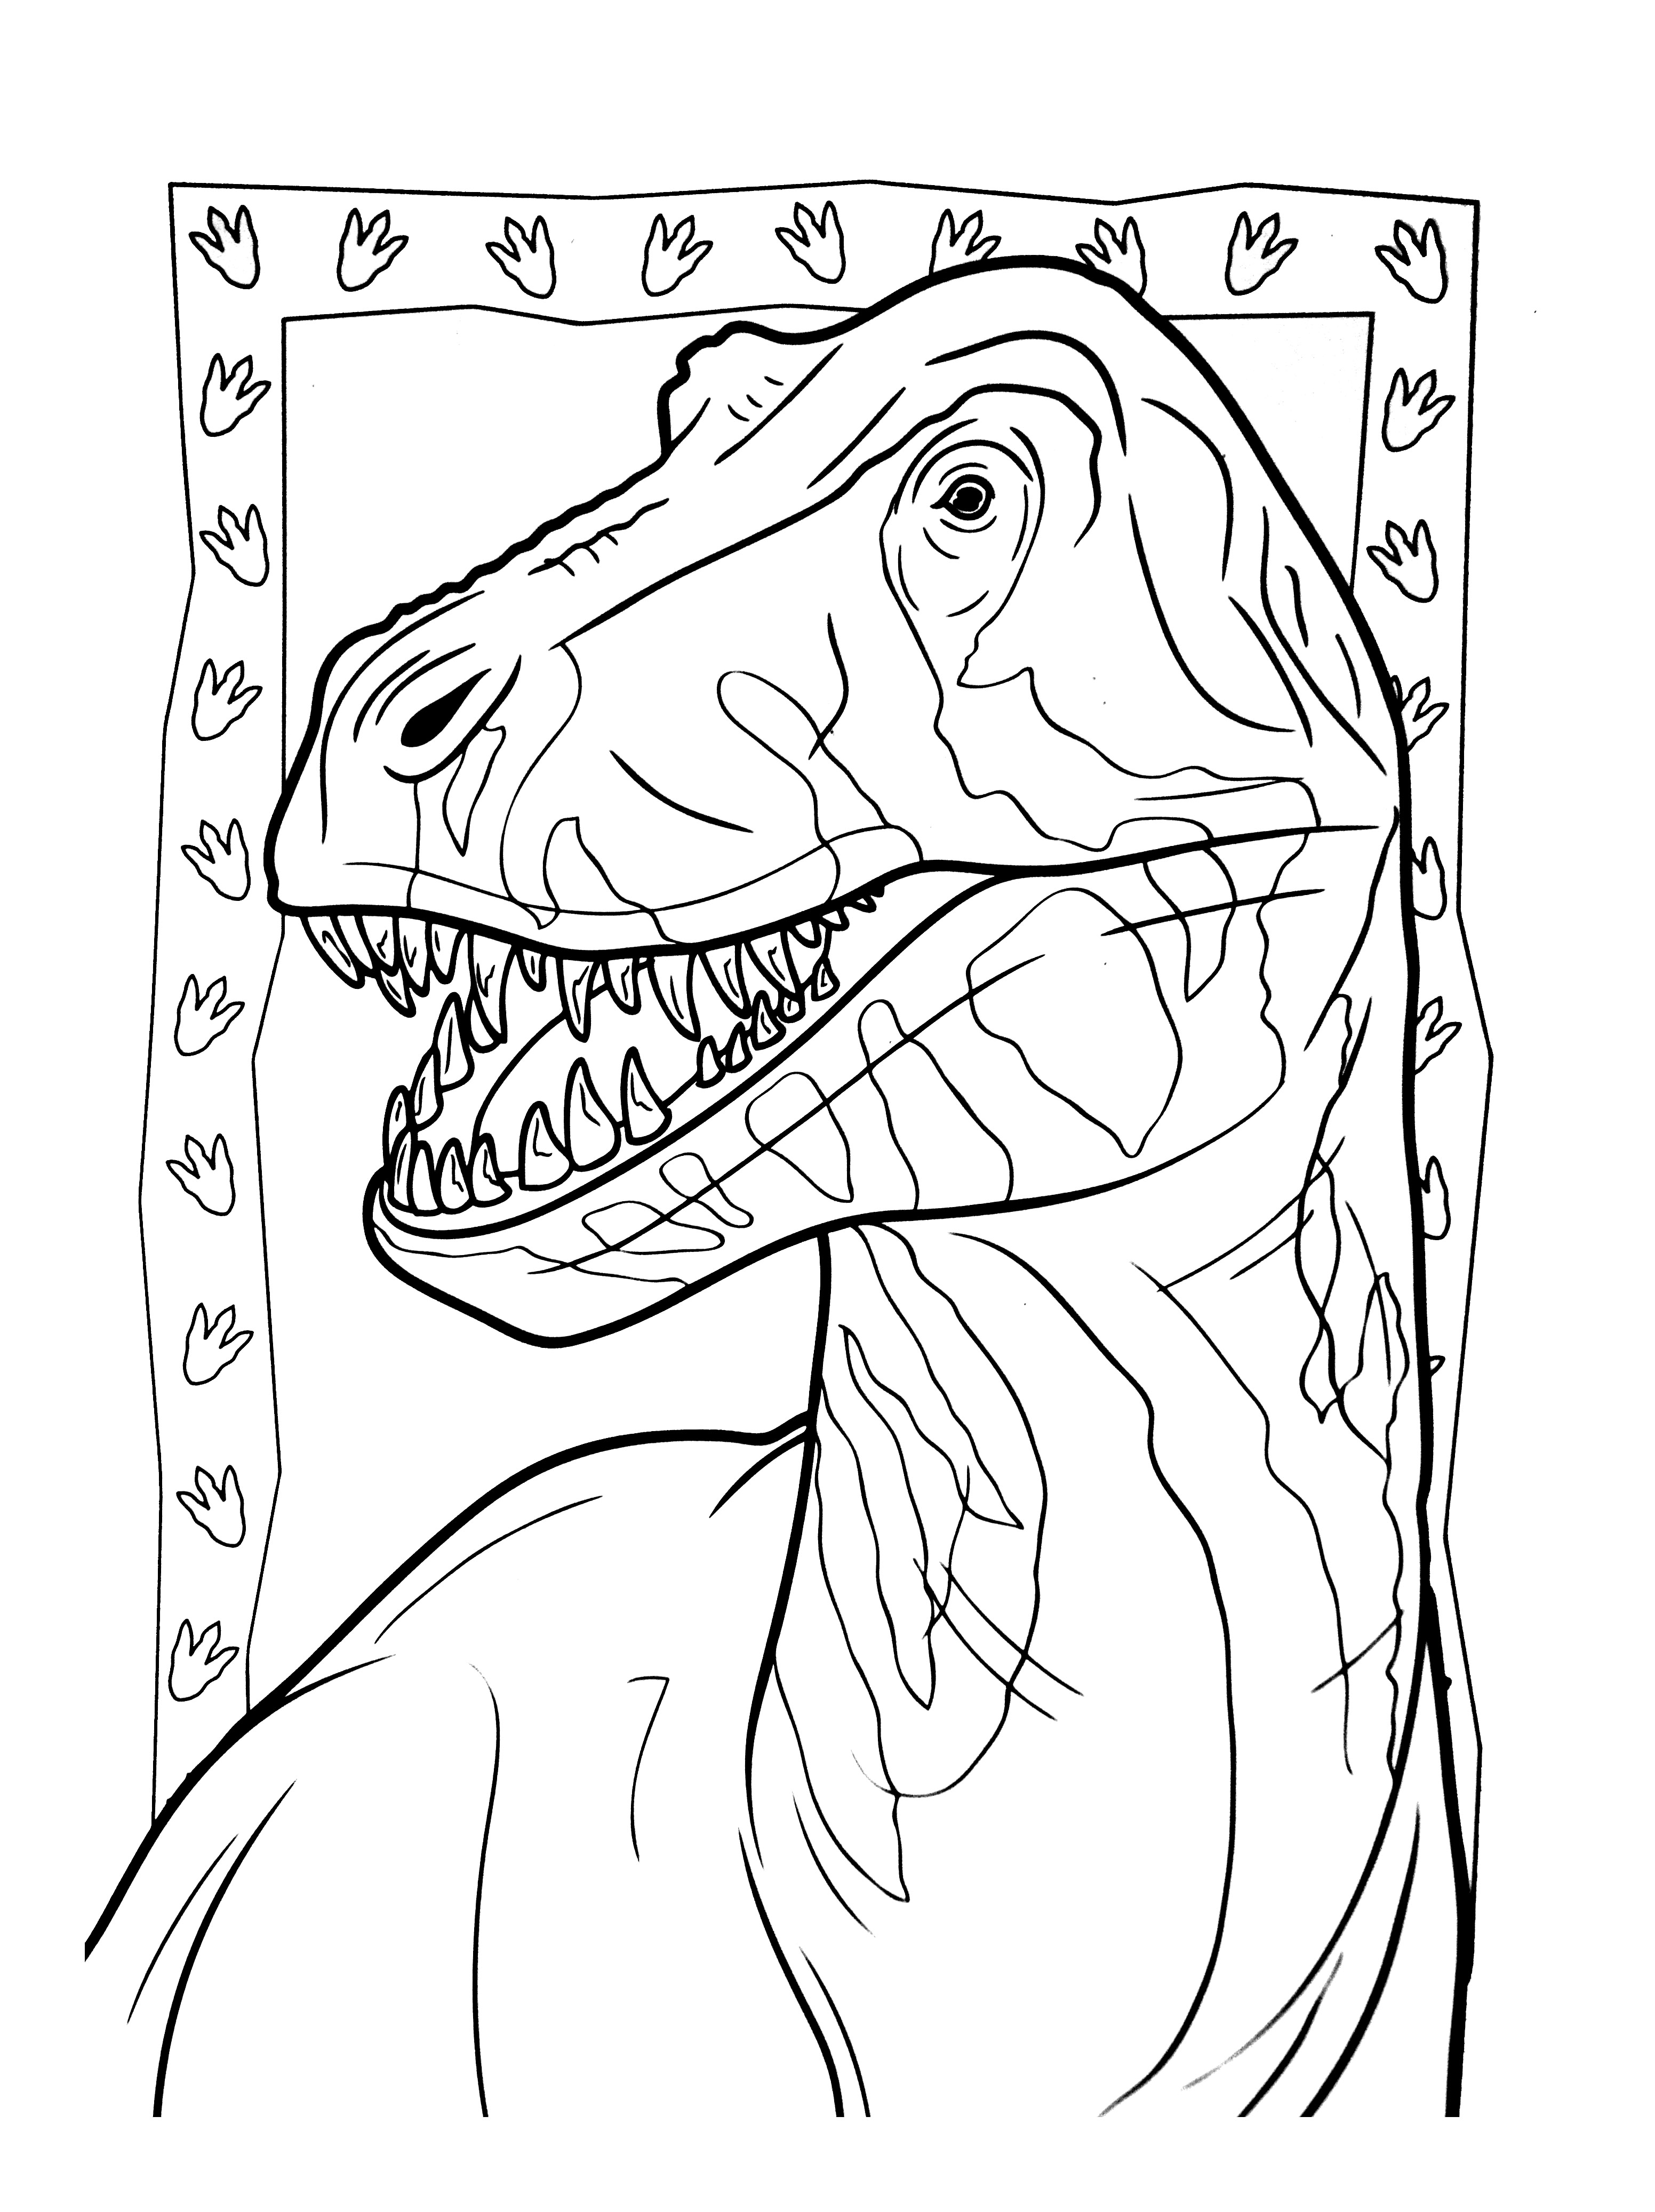 Beautiful Dinosaurs coloring page to print and color : T-Rex face